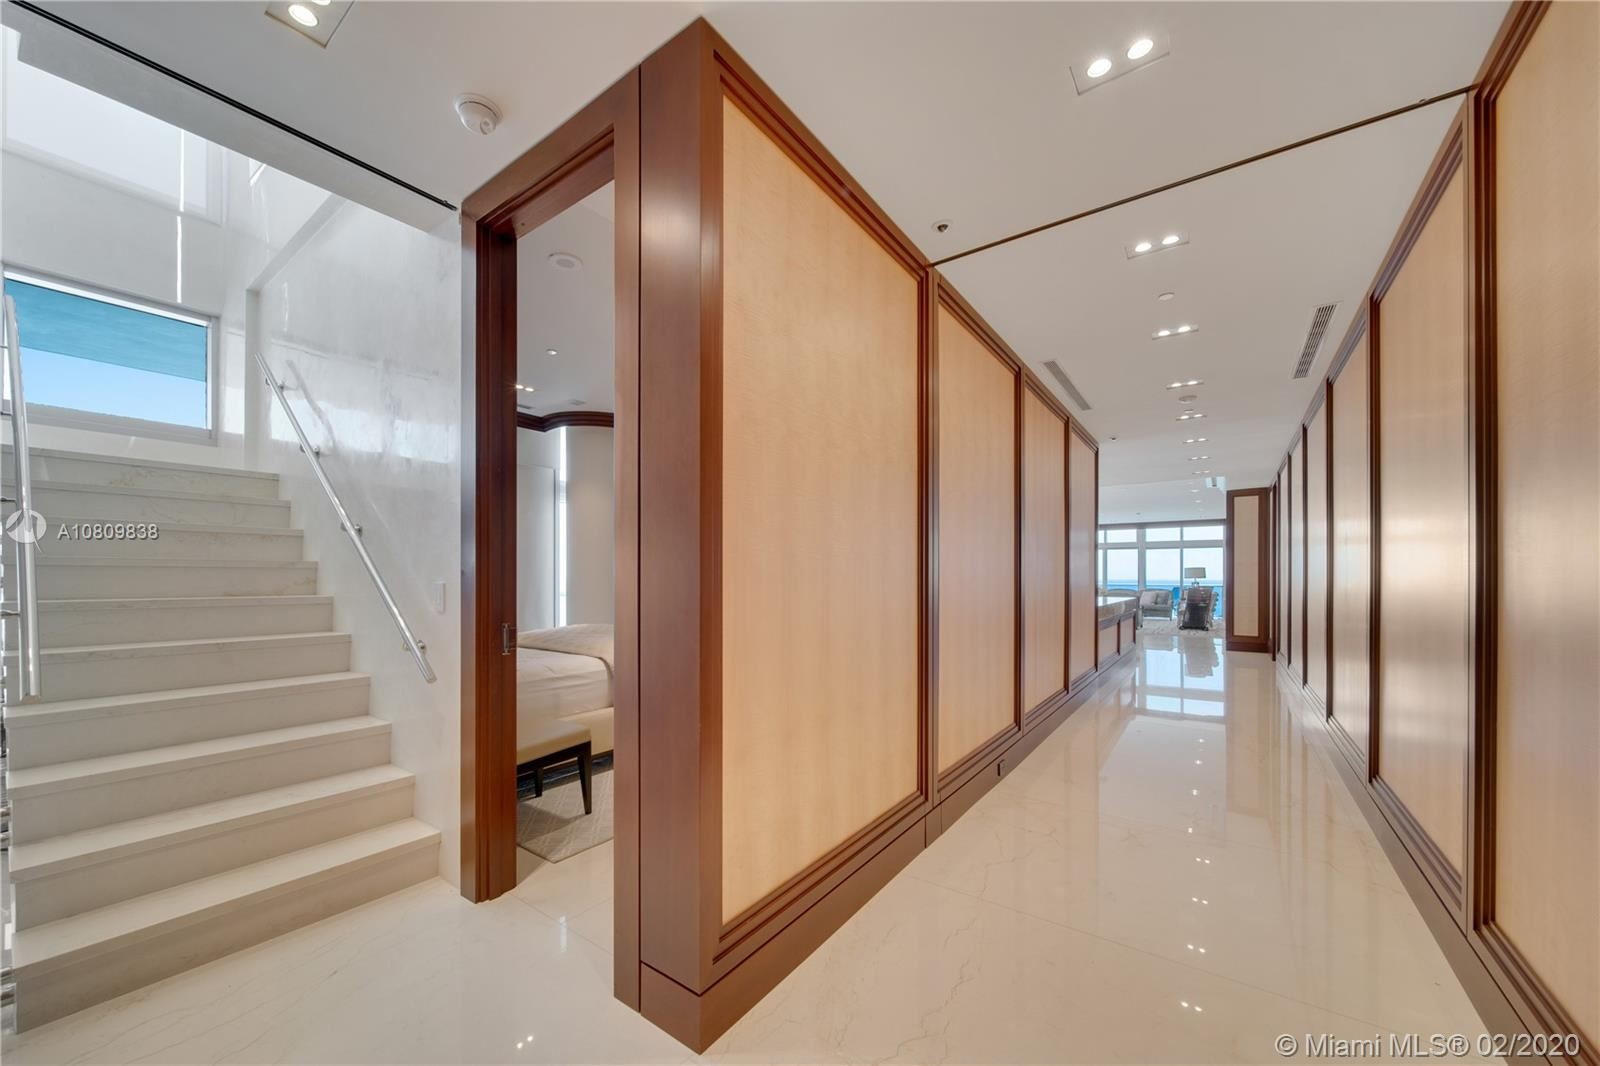 Photo 14 of Listing MLS a10809838 in 3737 Collins Ave #PH-4 Miami Beach FL 33140